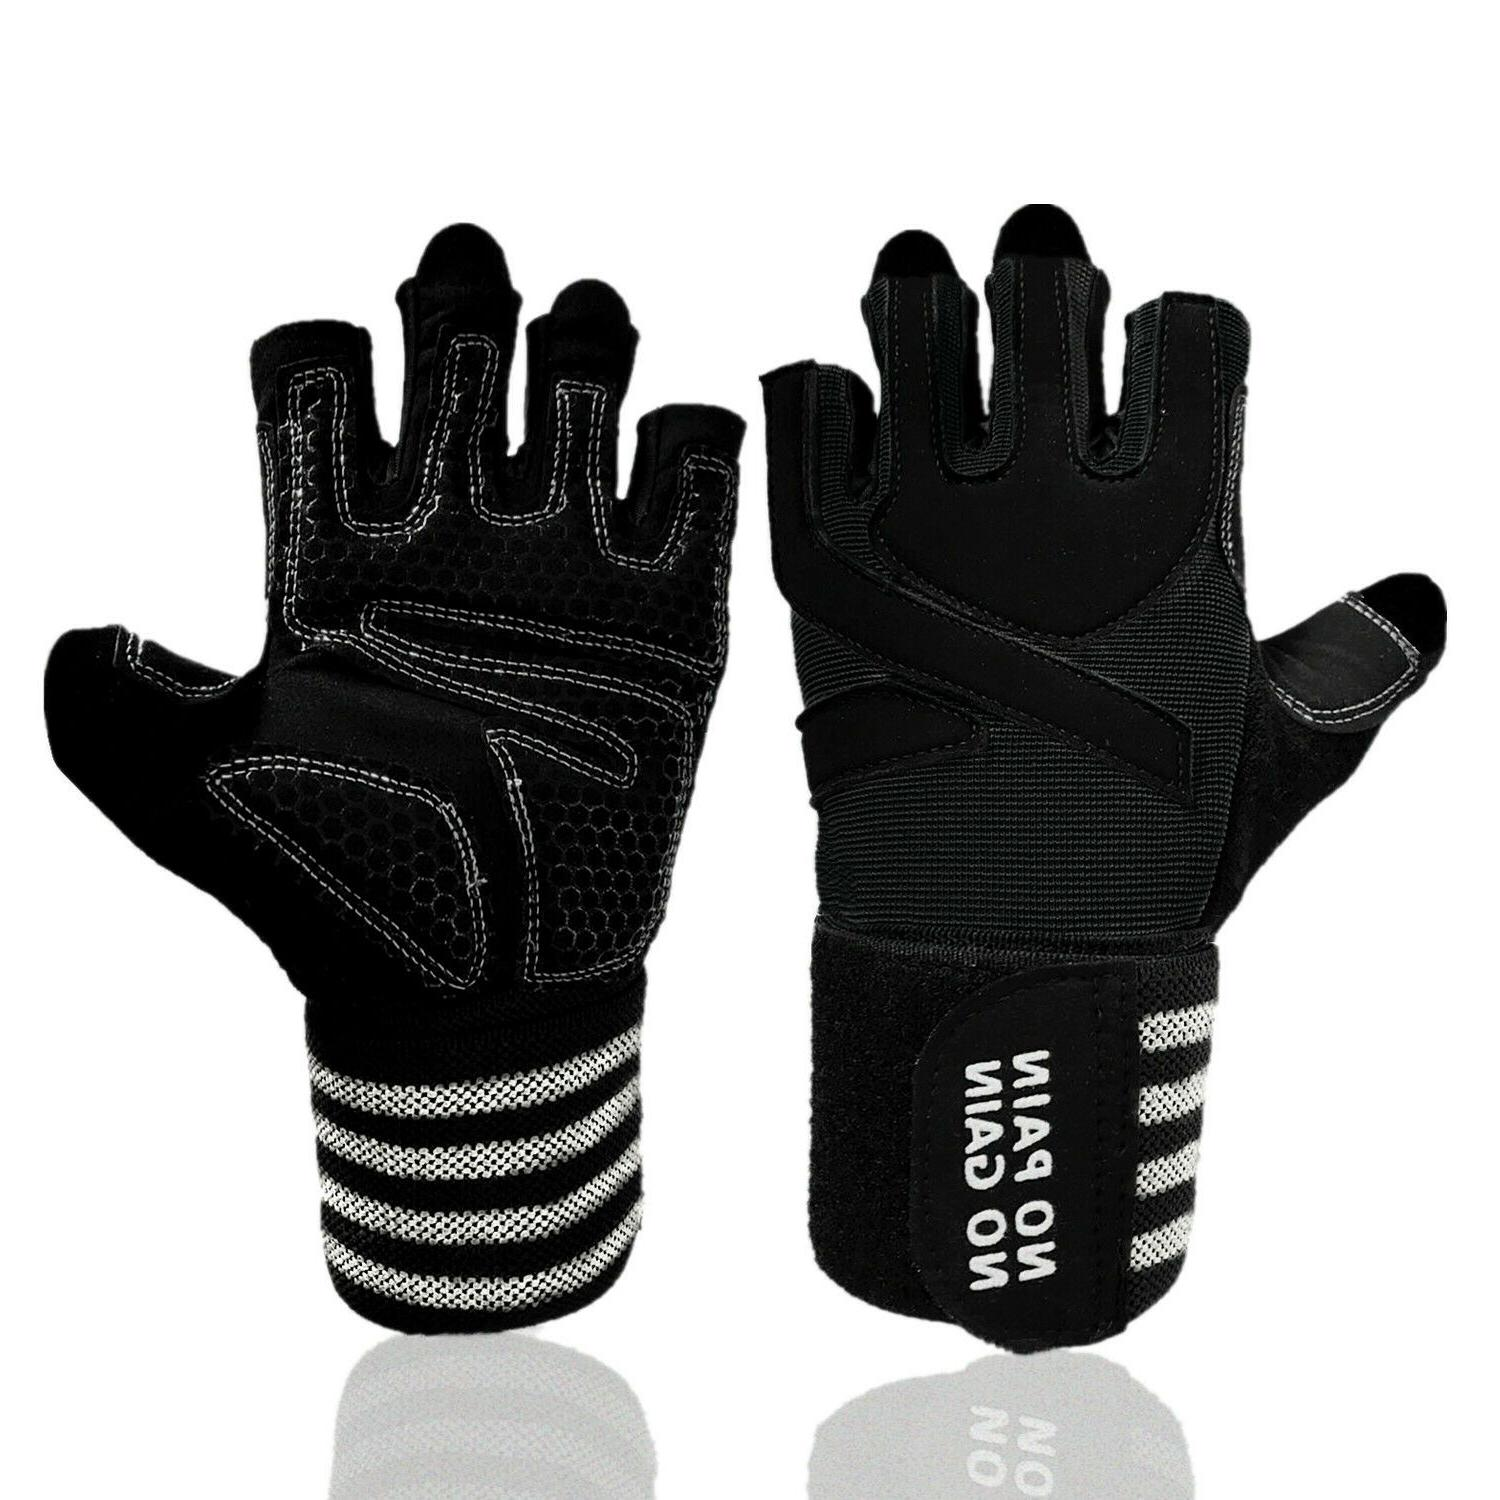 Wrist Wrap Support Gym Gloves For Weight Lifting/Sports/Trai